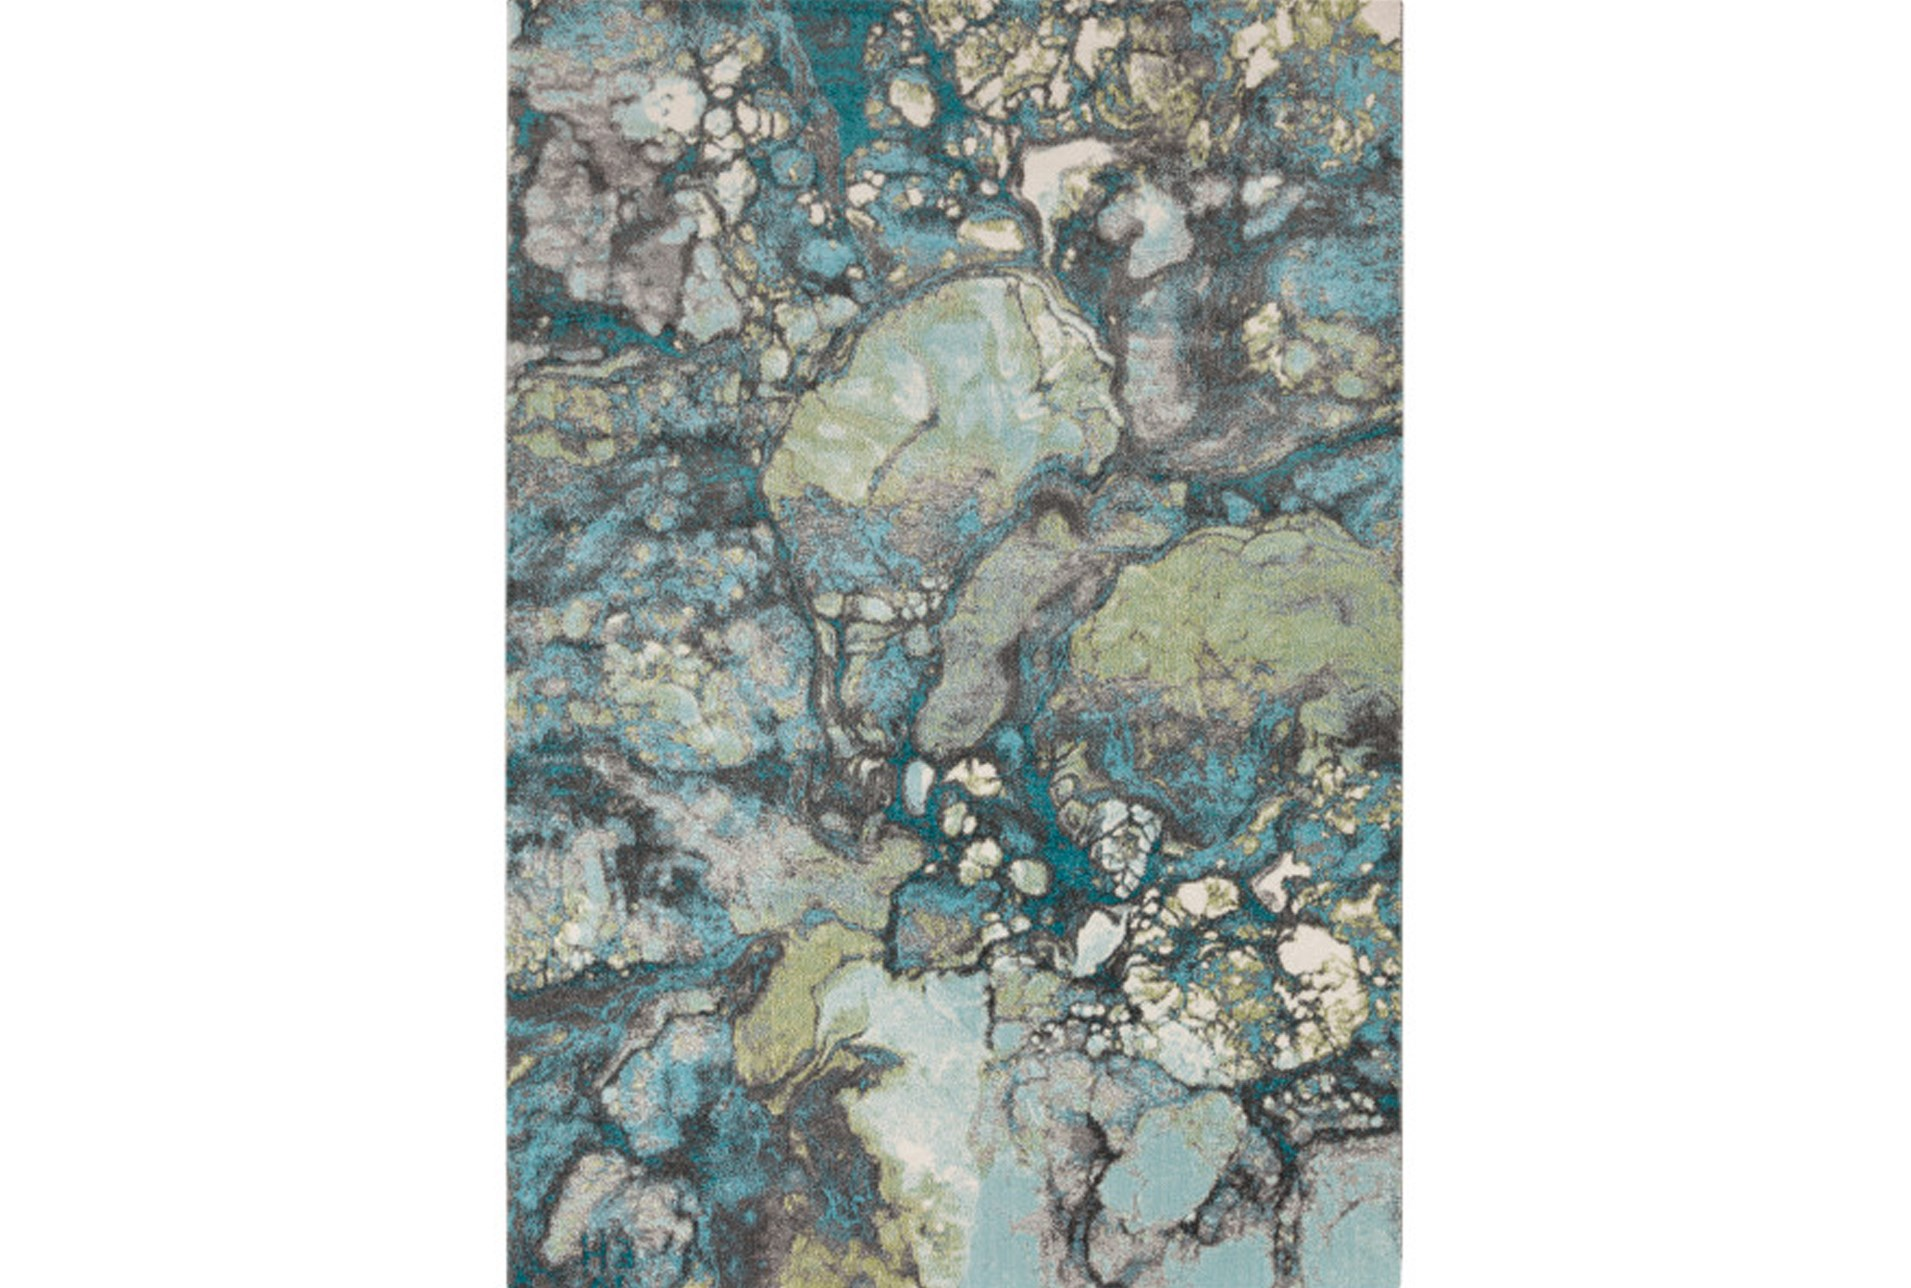 26x36 Rug Ketton Abstract Teal Lime Grey Qty 1 Has Been Successfully Added To Your Cart